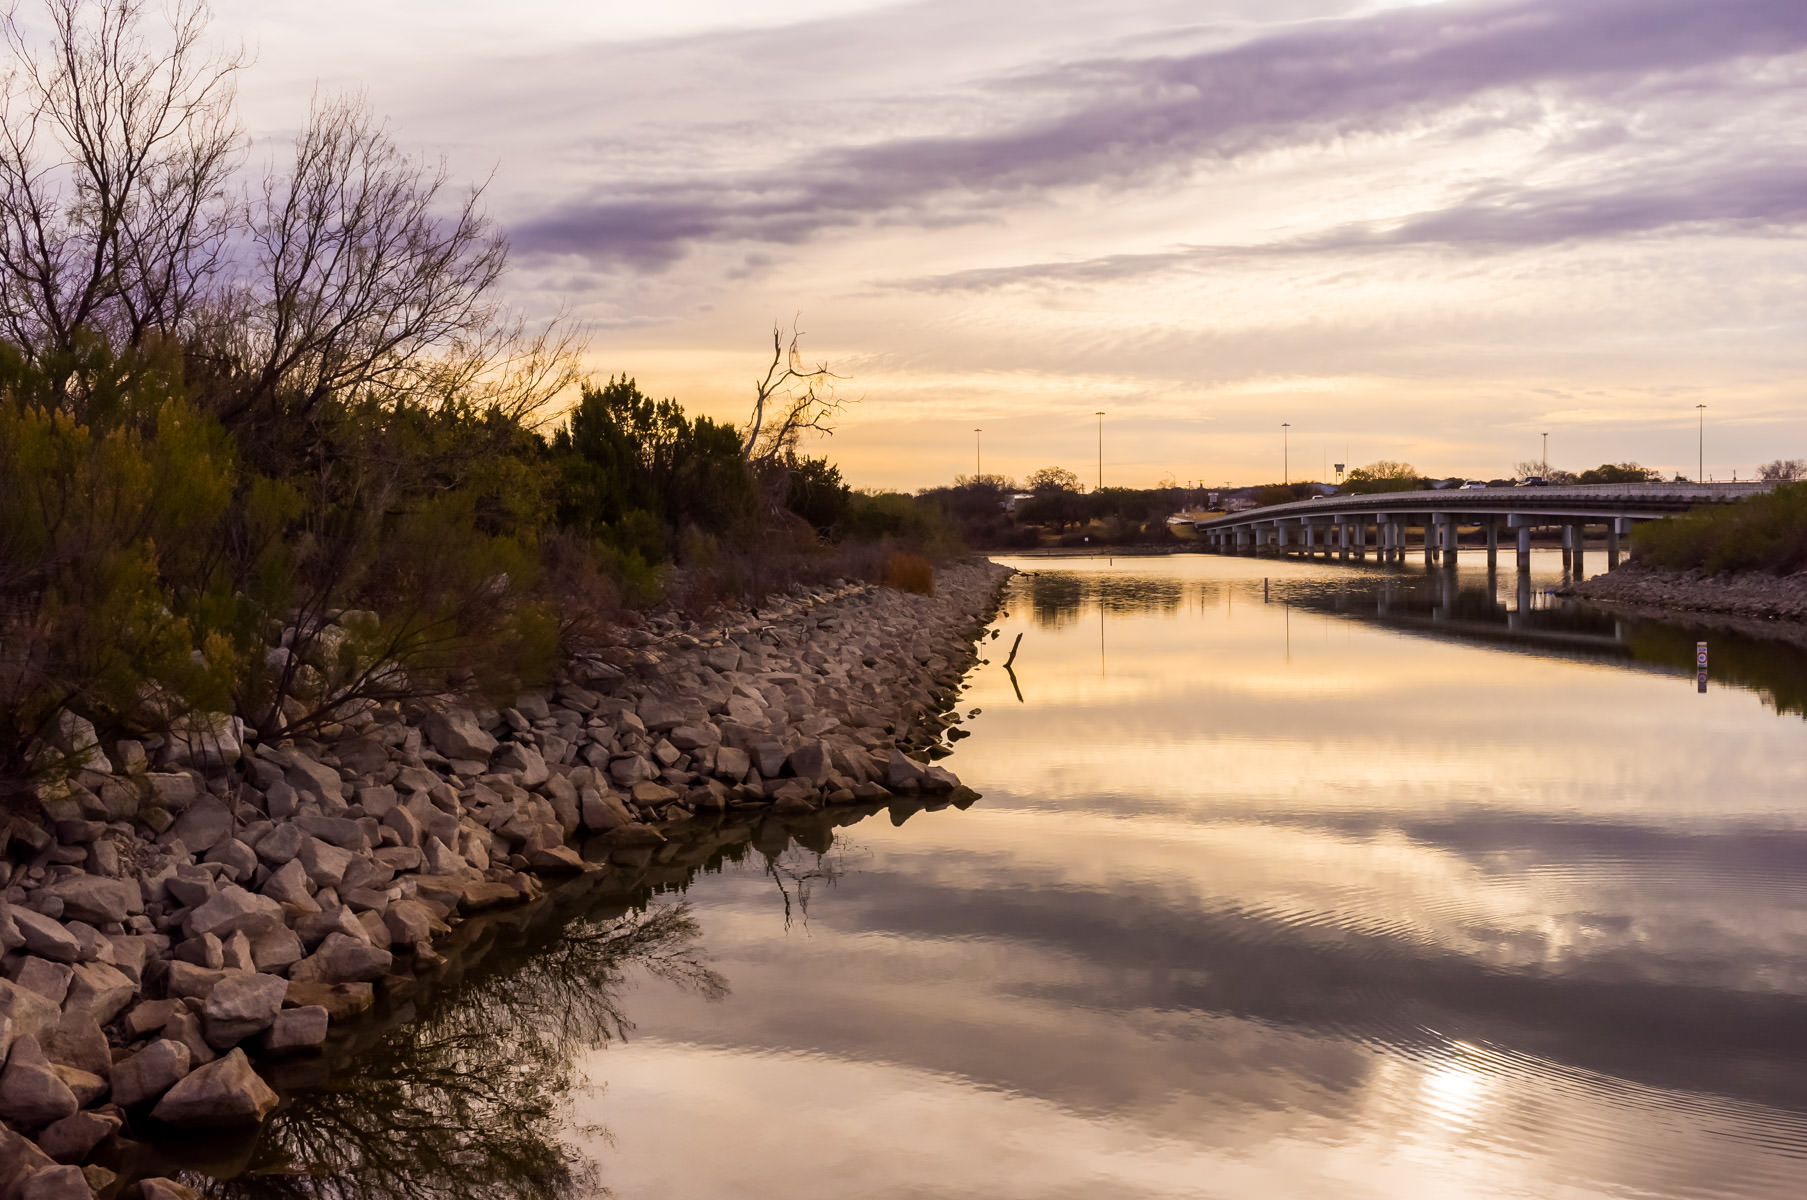 The sun's first light illuminates Lake Granbury, Texas.